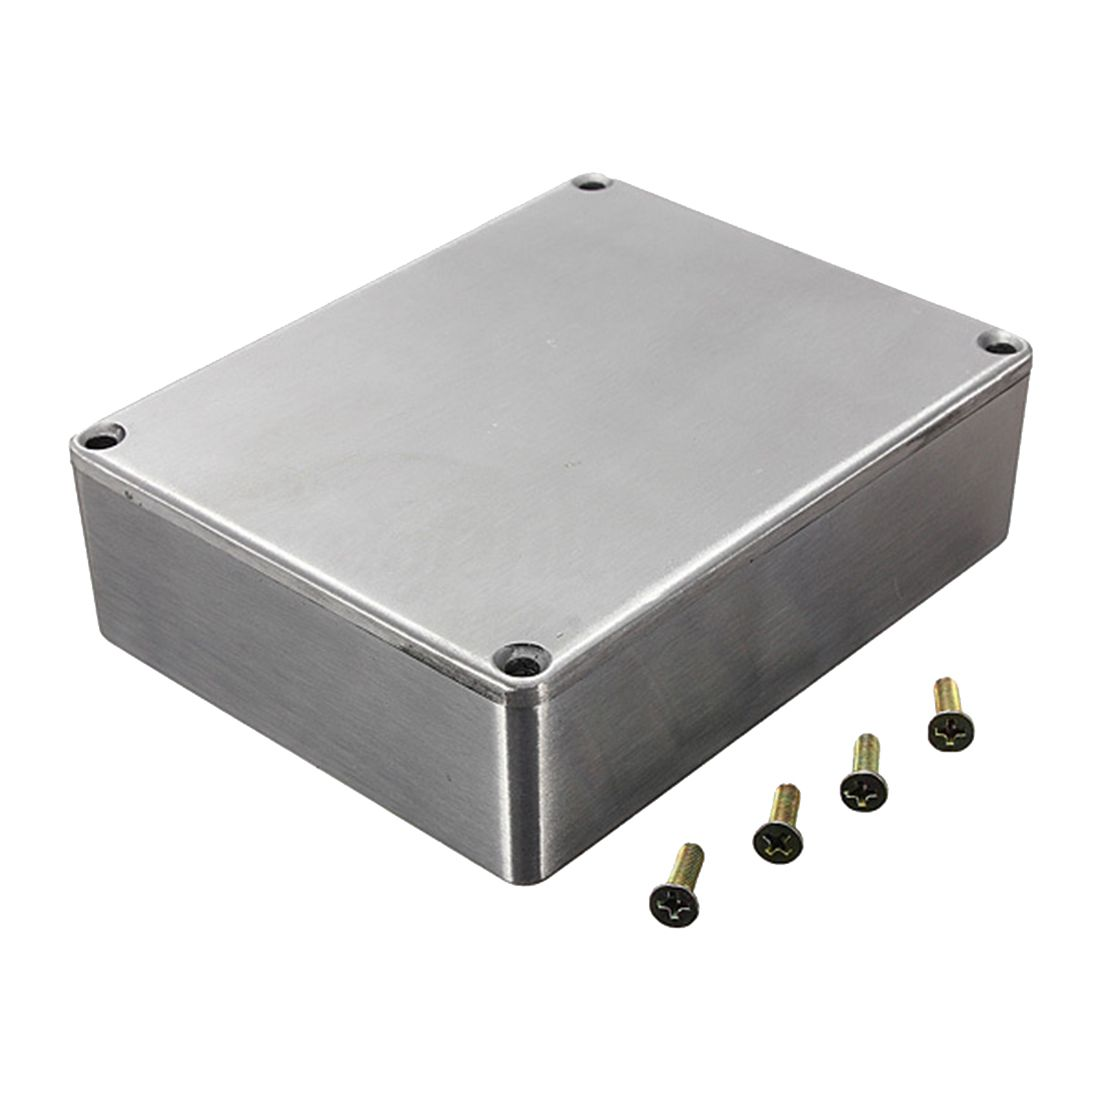 Diecast Aluminium Electronics Project Box Case Enclosure Instrument Waterproof, Standard 1590B 112X60x31mm free shipping 1piece lot top quality 100% aluminium material waterproof ip67 standard aluminium box case 64 58 35mm